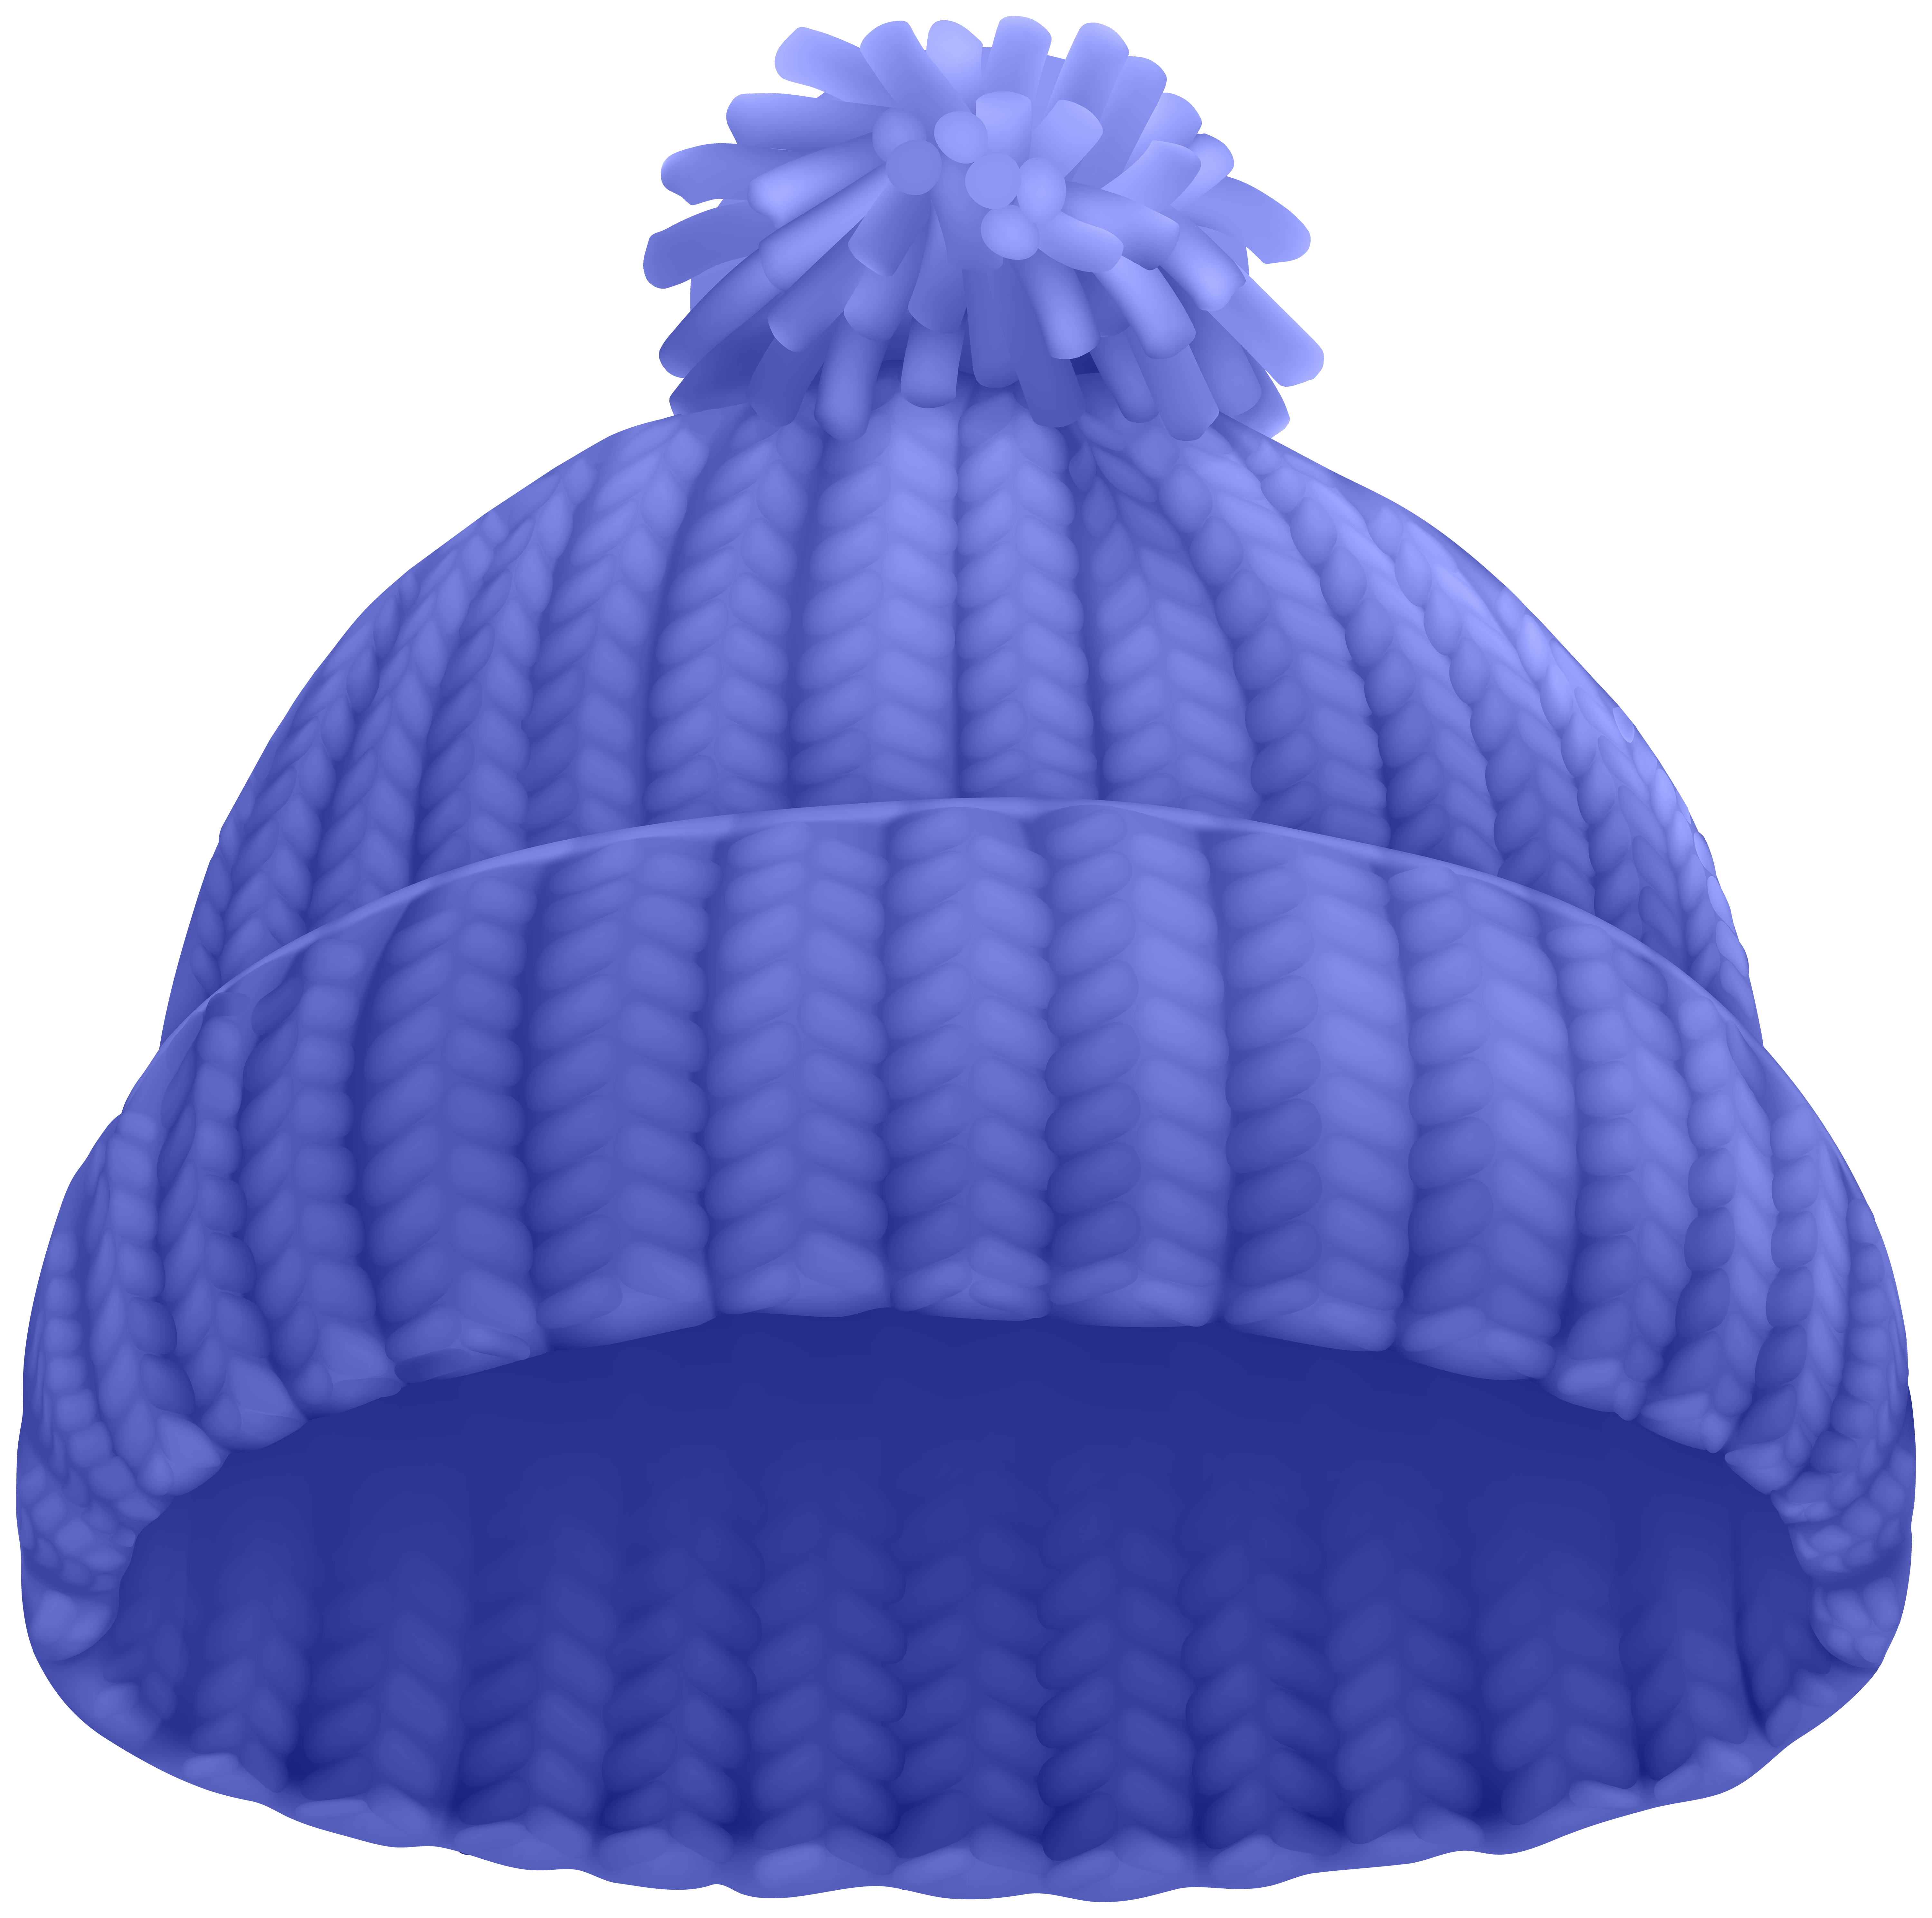 Winter hat on child clipart jpg royalty free Hats clipart kid, Hats kid Transparent FREE for download on ... jpg royalty free